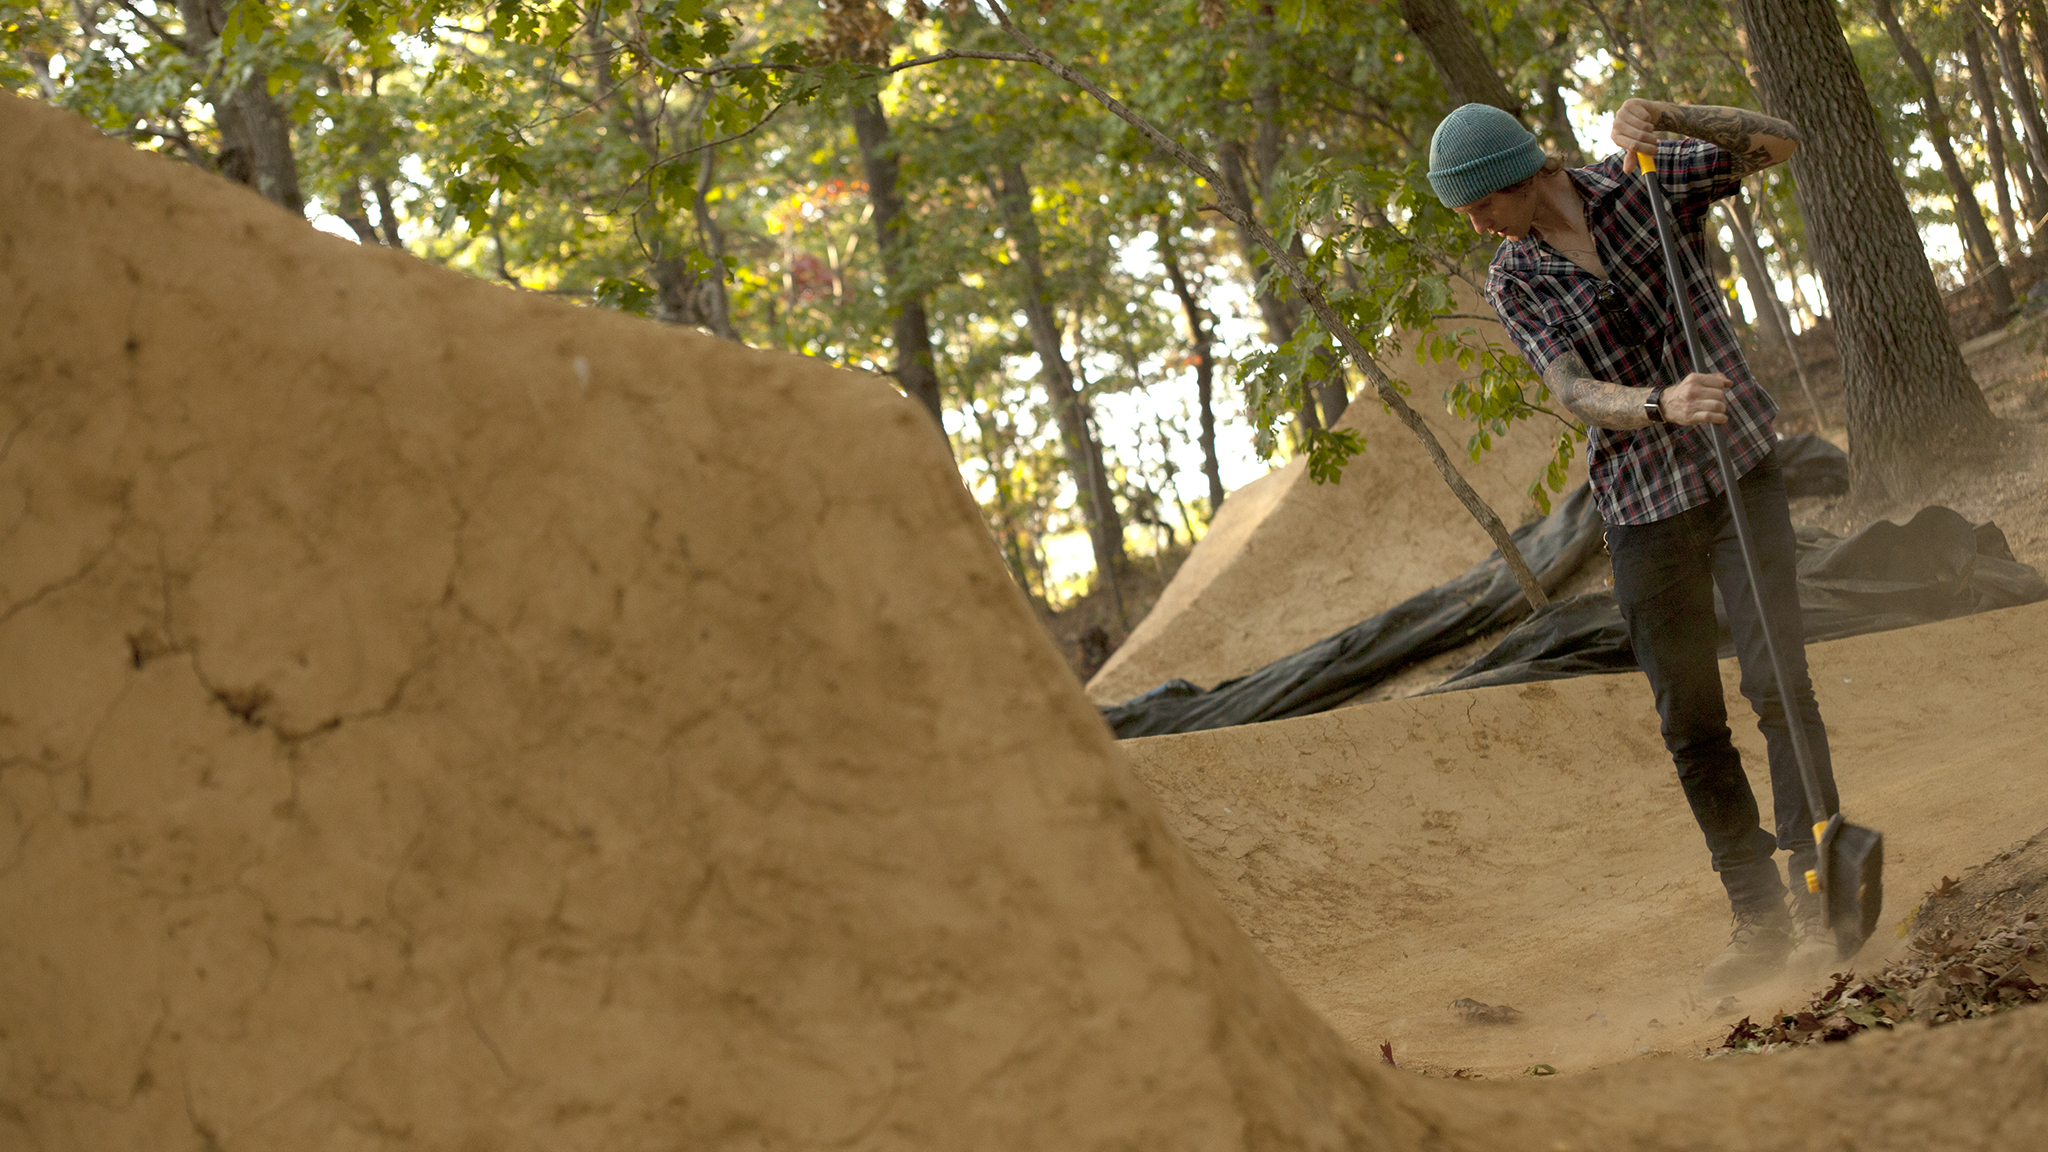 Brian Kaminski, digging at the Boondock Trails in Long Island, N.Y.